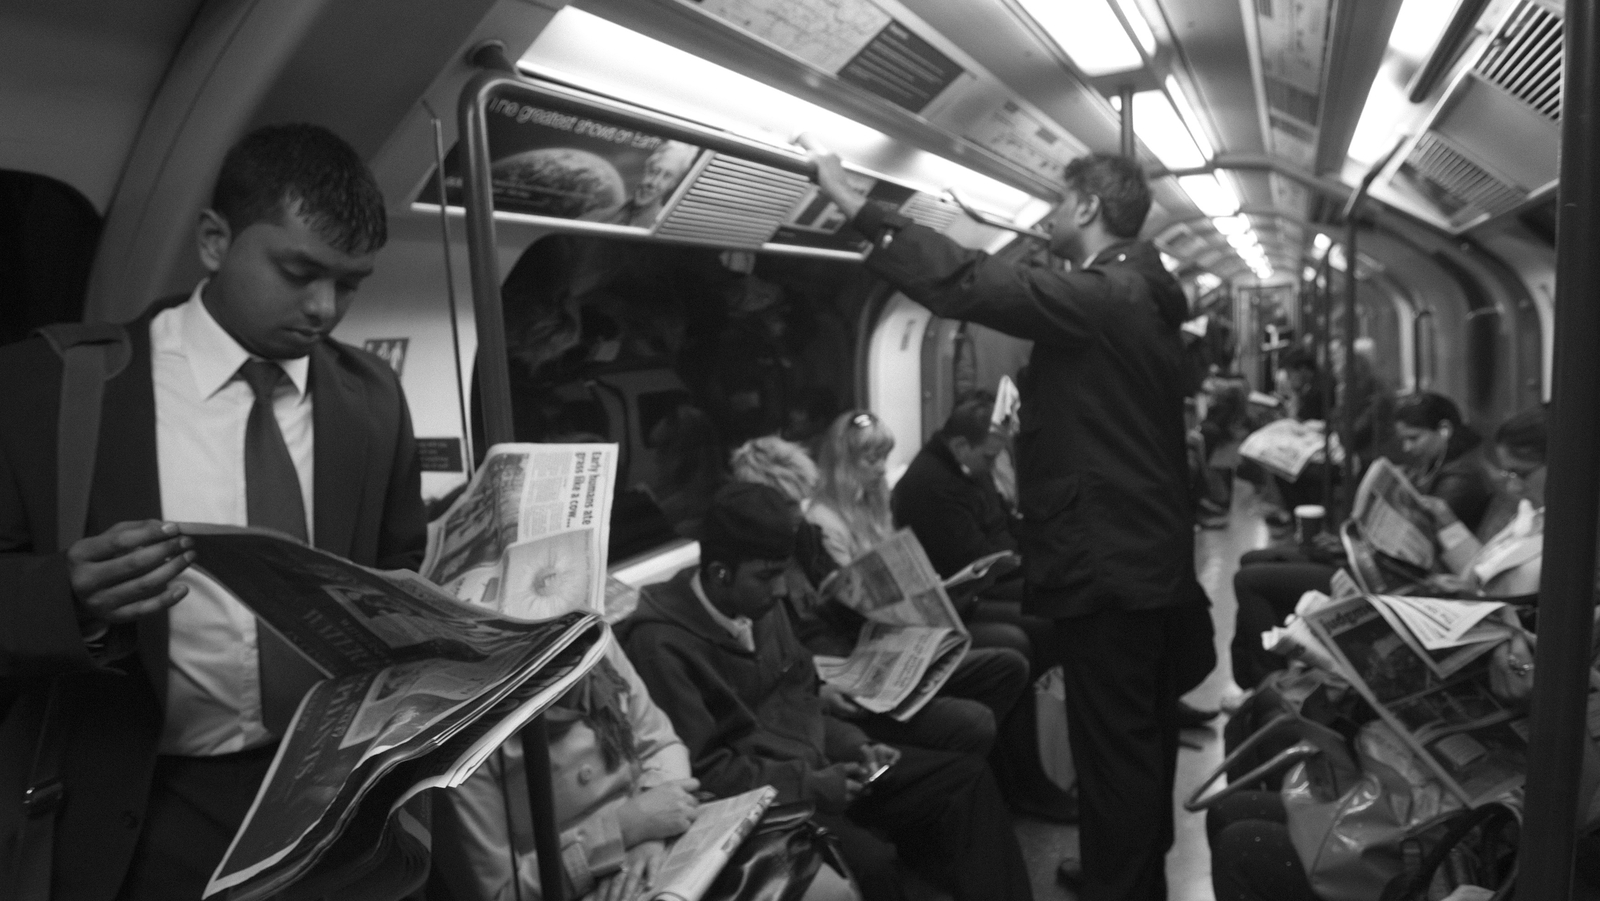 Image - Commuters reading newspapers